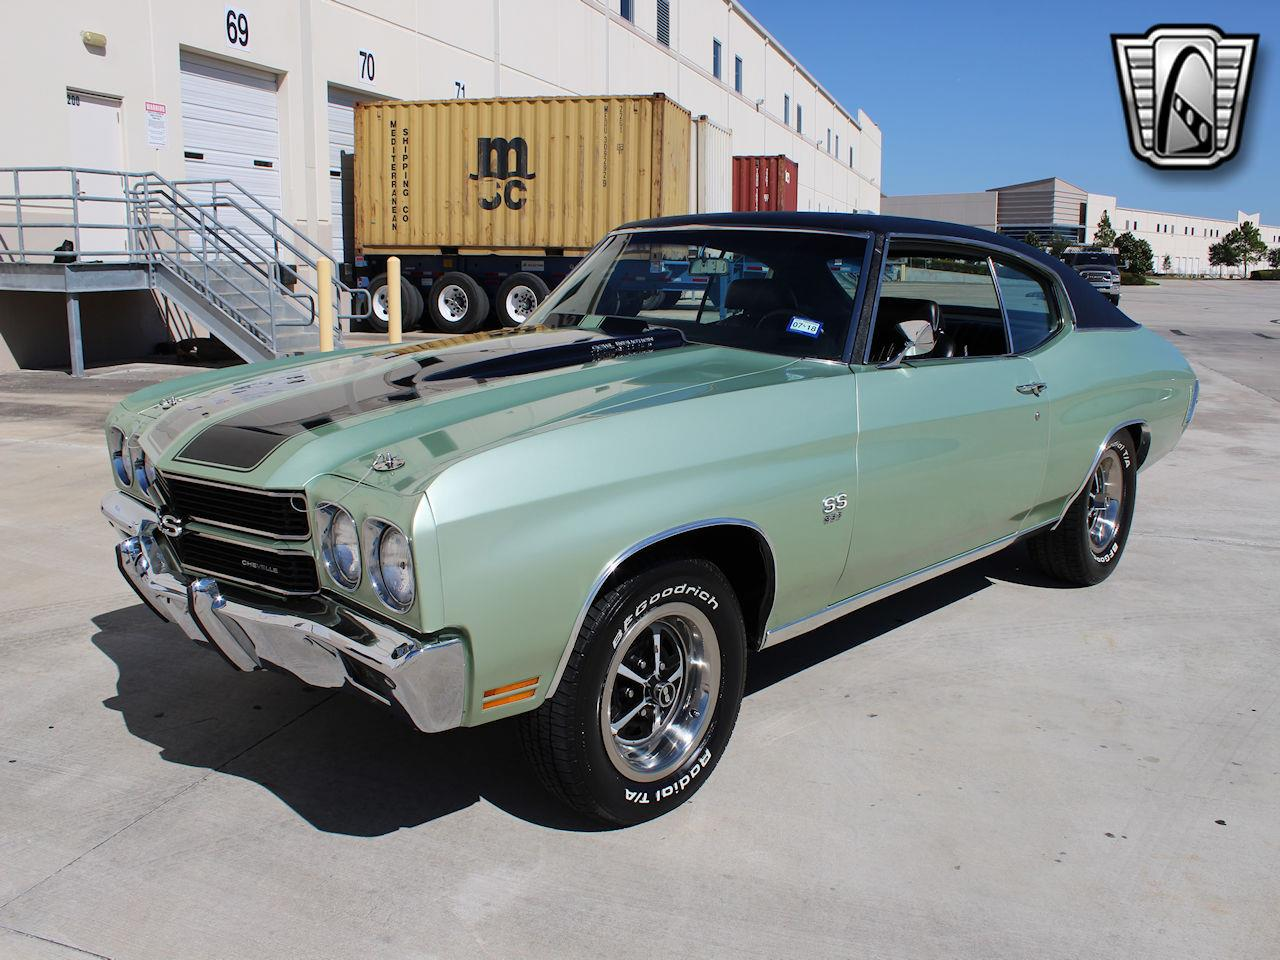 1970 Chevrolet Chevelle (CC-1341581) for sale in O'Fallon, Illinois